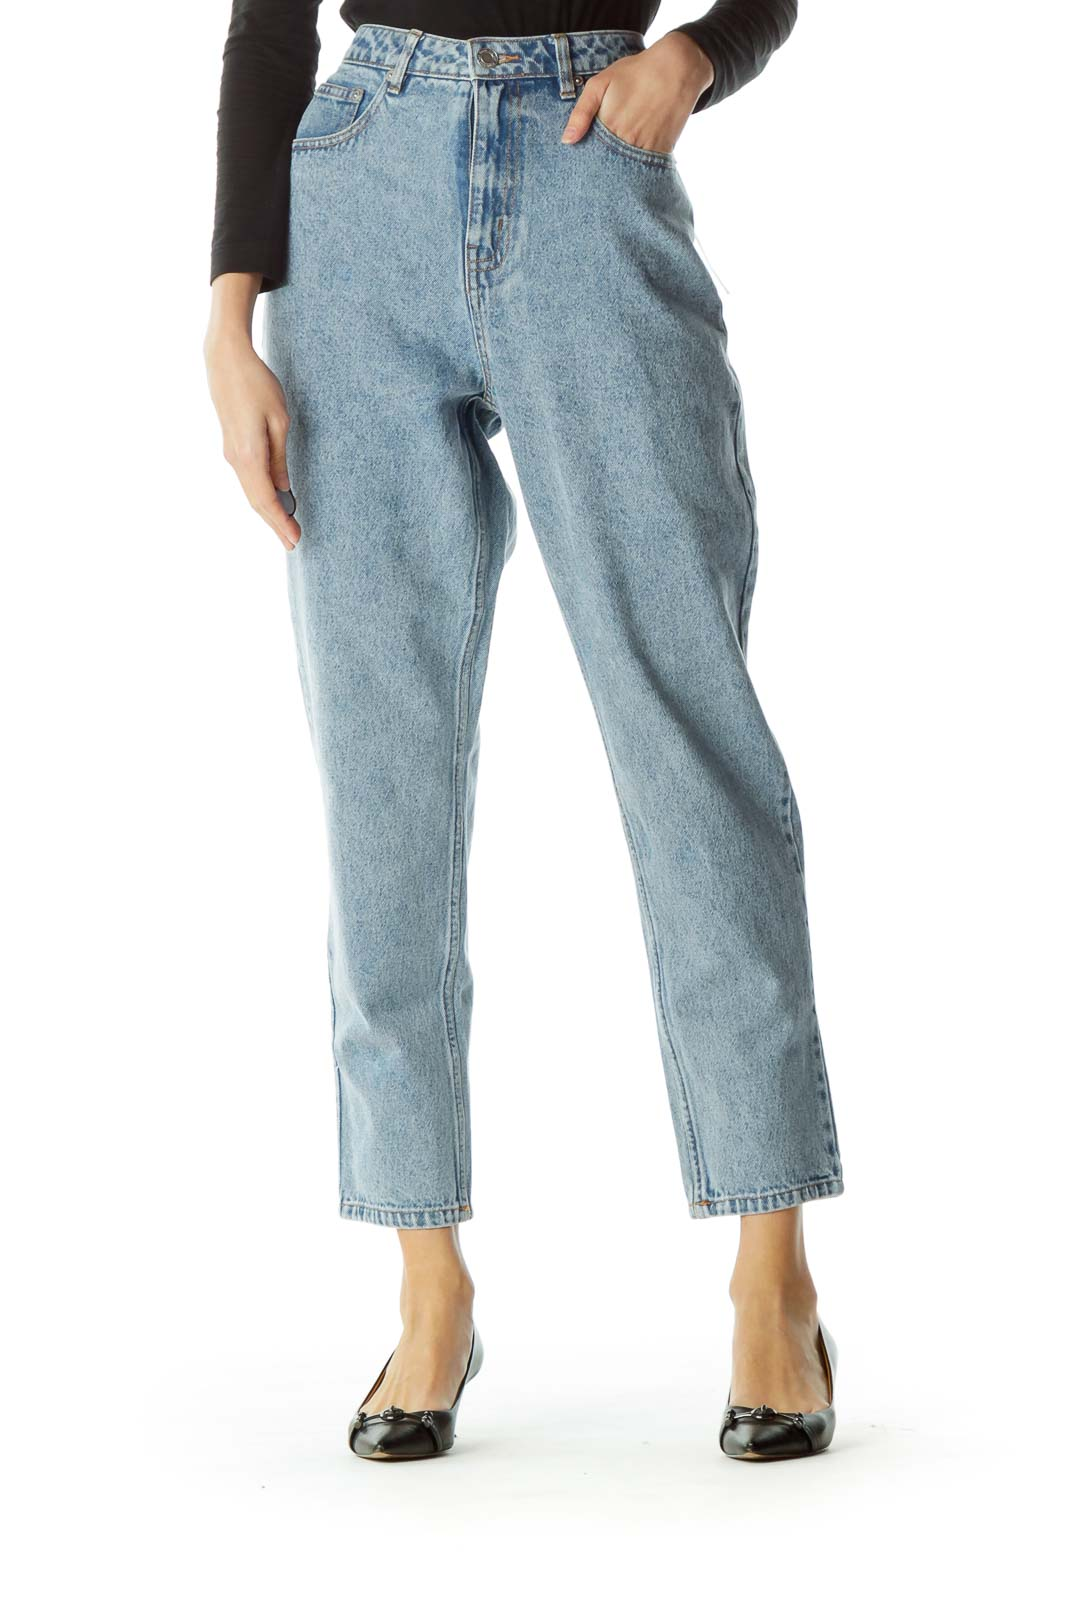 Blue Light Wash High-Waisted Denim Jeans Front